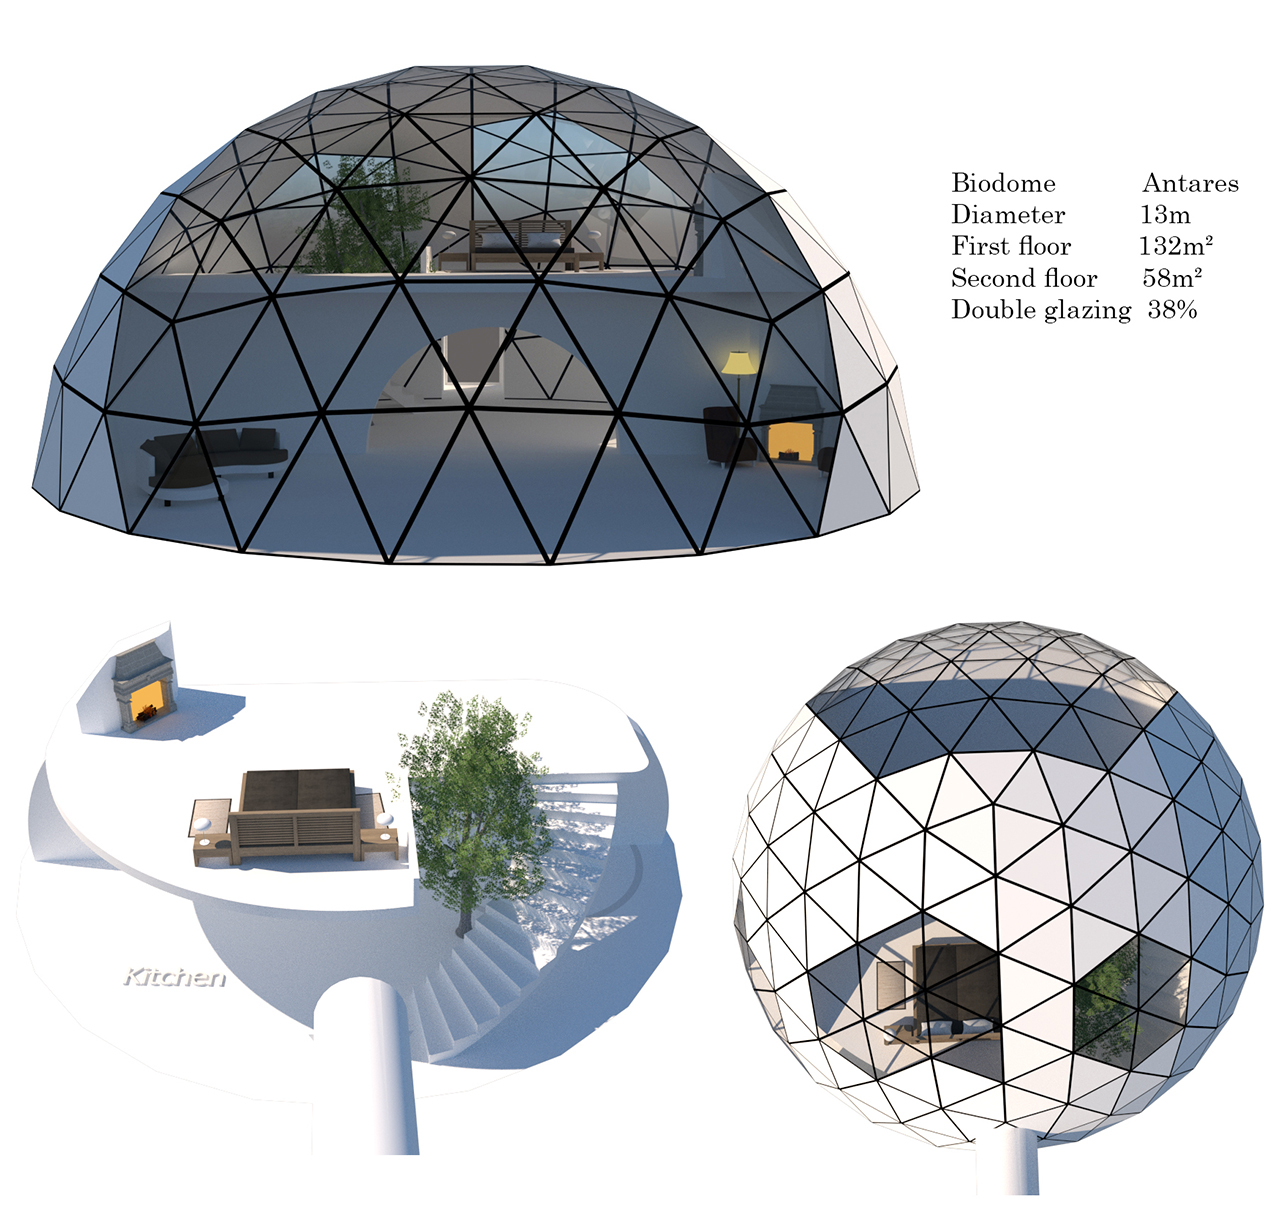 Dome House Futuristic: Glass Geodesic Domes, Modern Sustainable Homes